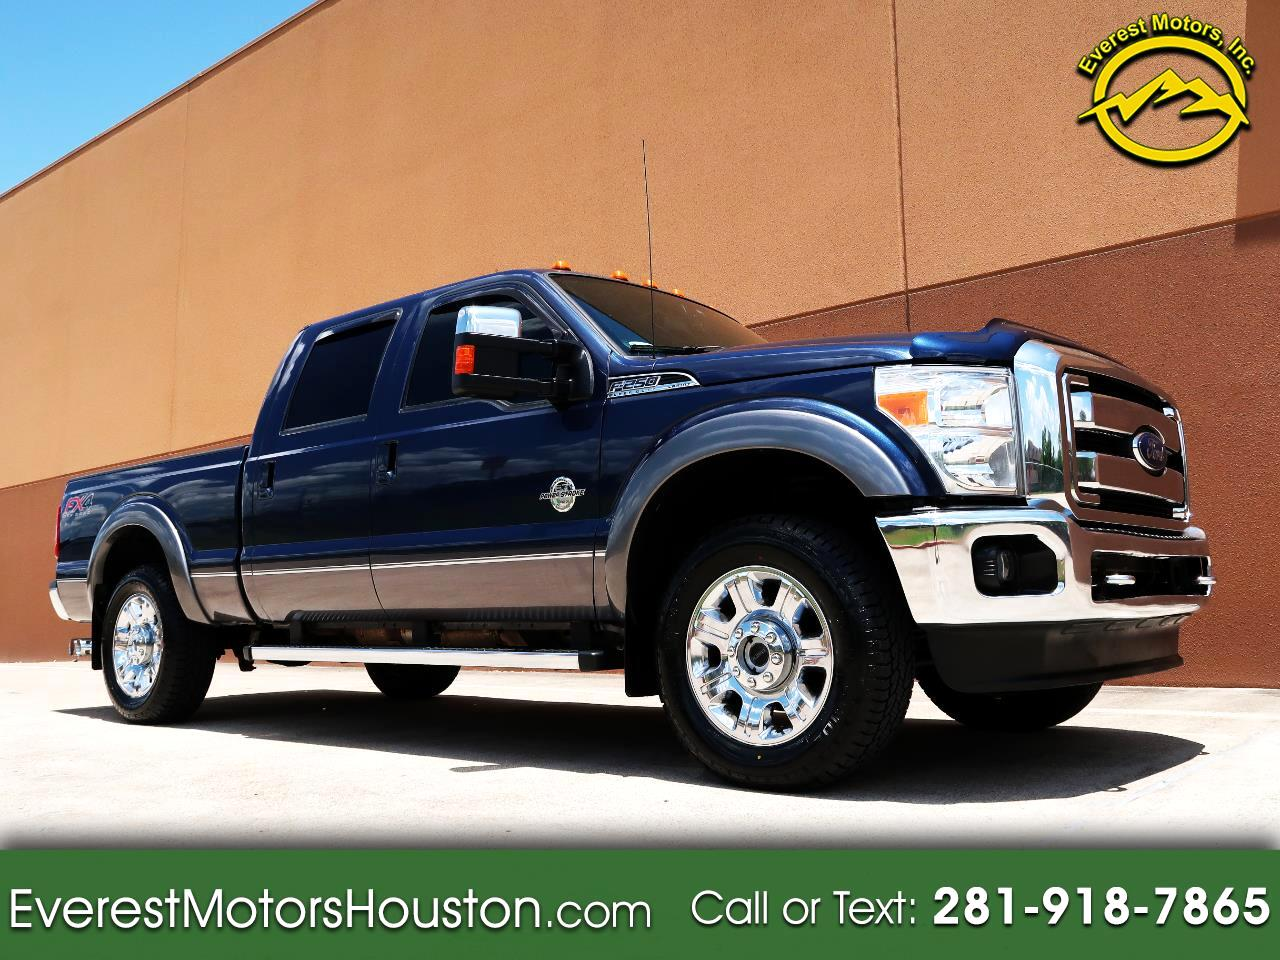 2013 Ford F-250 SD LARIAT CREW CAB SWB 4WD DIESEL NAV CAM ROOF